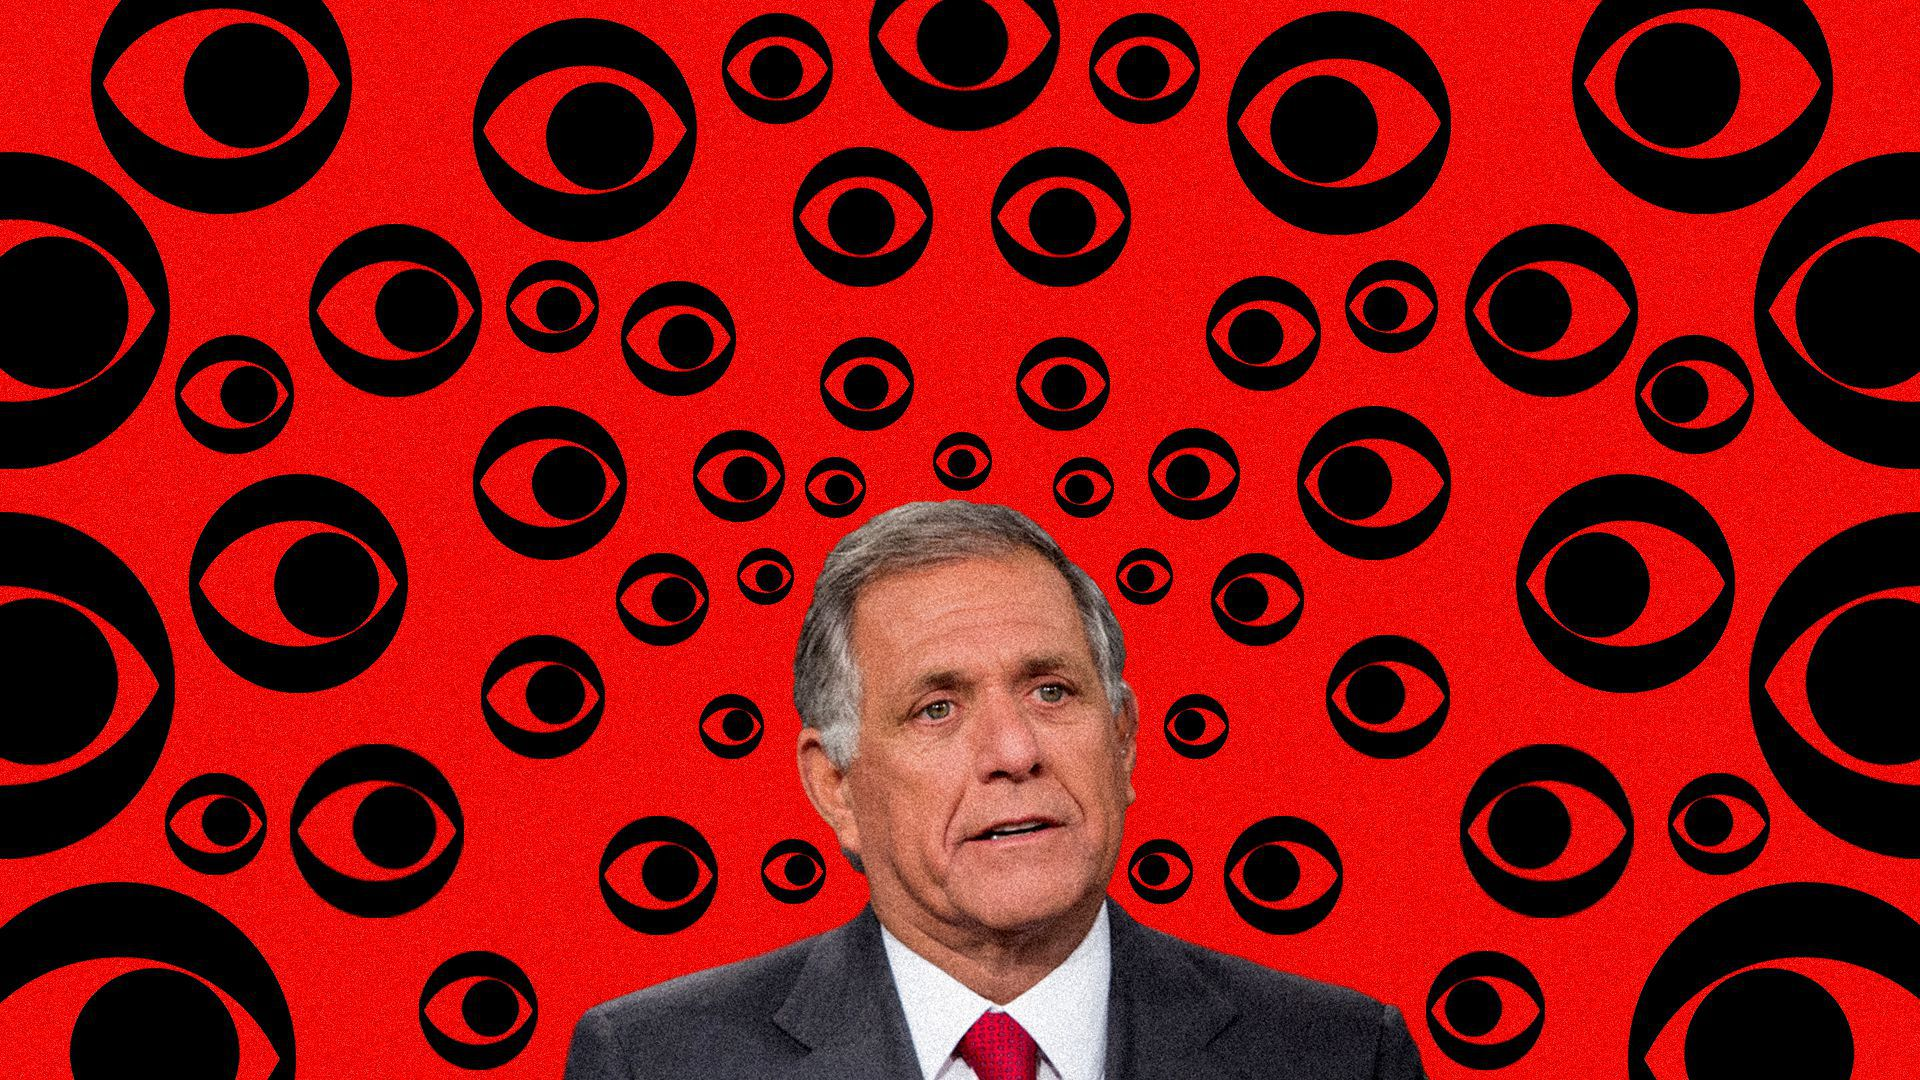 CBS readies for a new era without Les Moonves